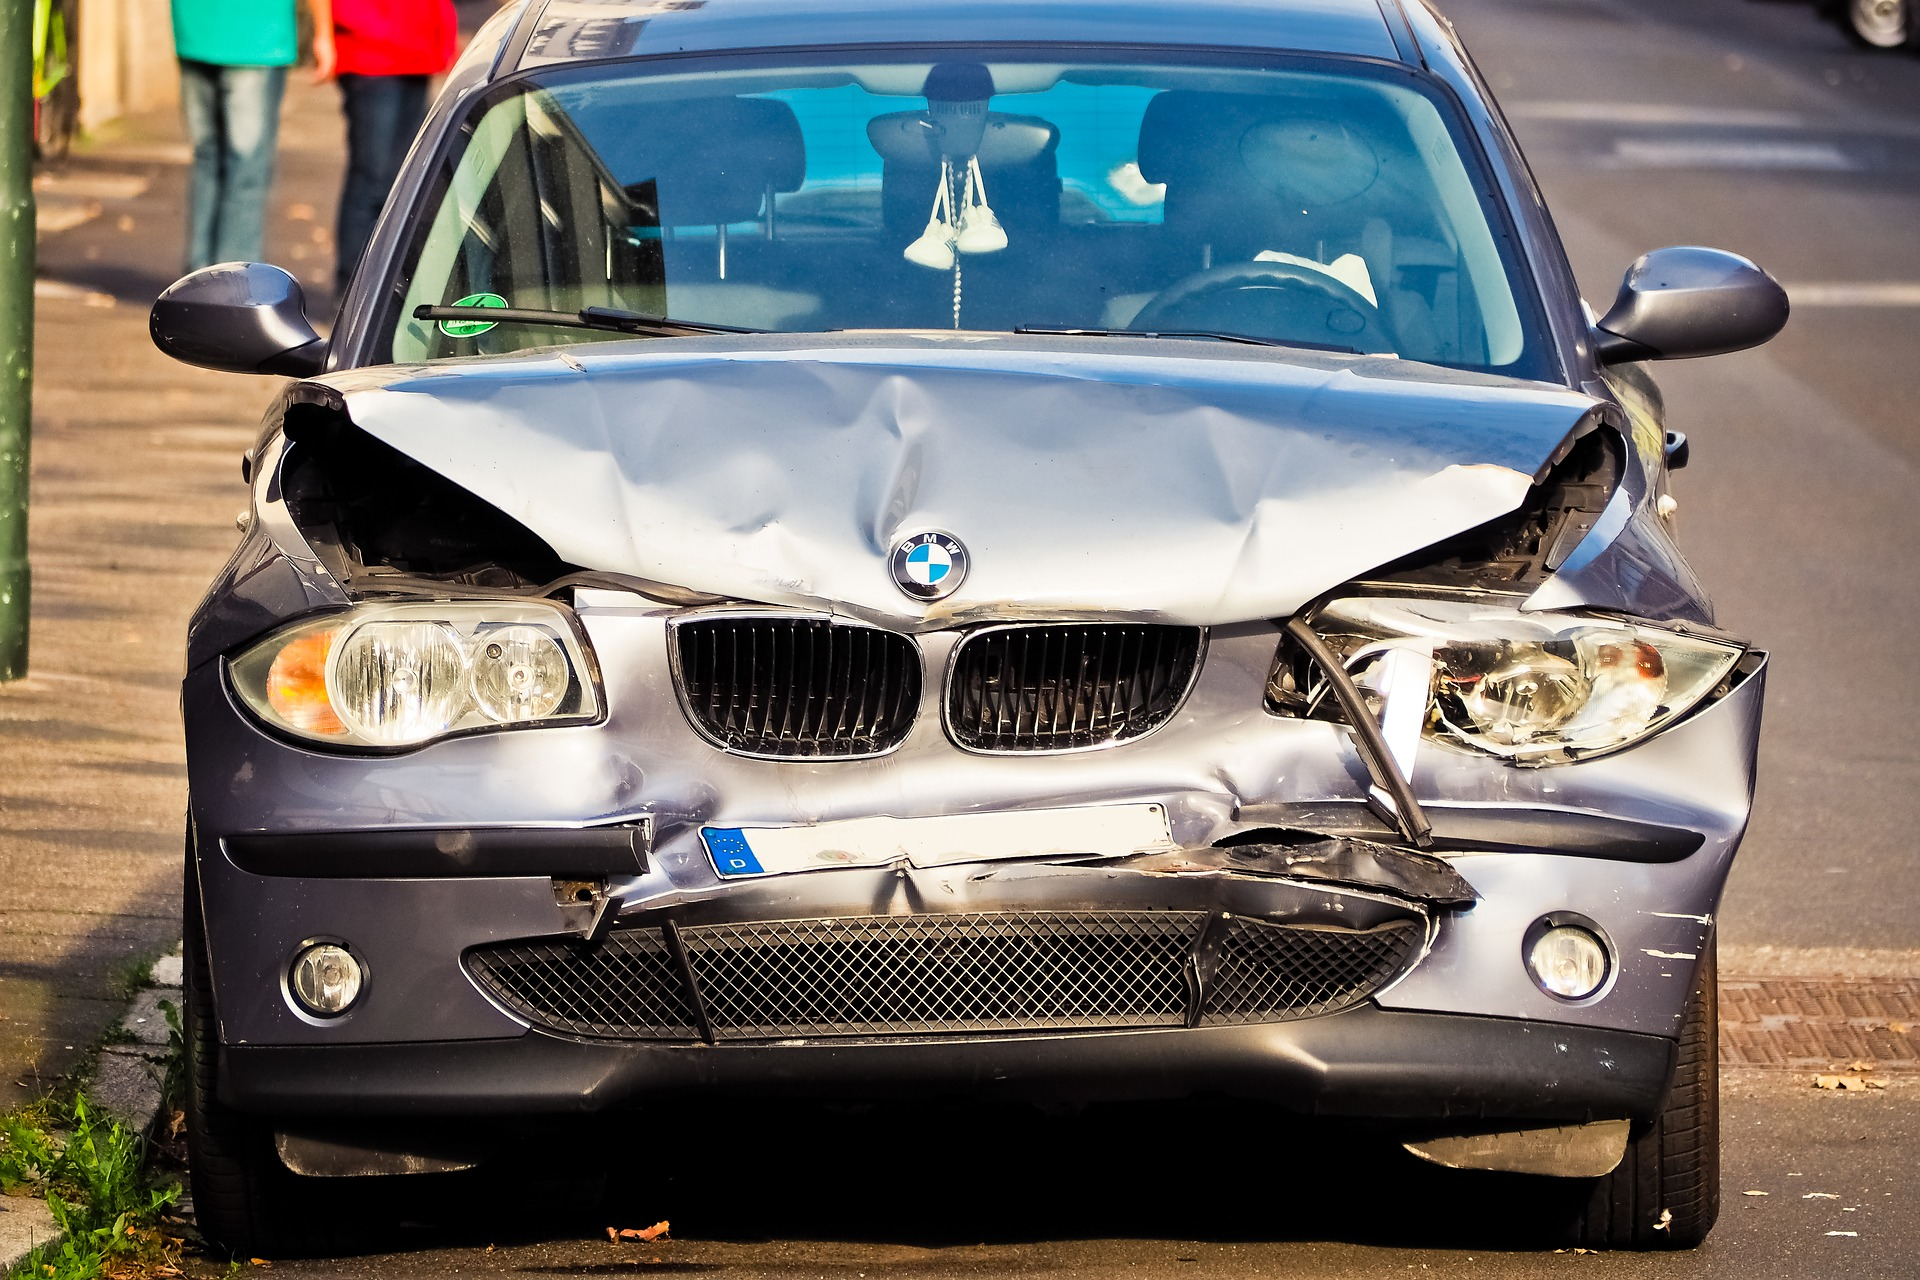 Auto Accidents - We boast the latest and greatest in auto injury rehab and pain reduction. Auto accidents can cause major permanent damage to your body. Don't wait too long after an accident to get checked by a healthcare professional!